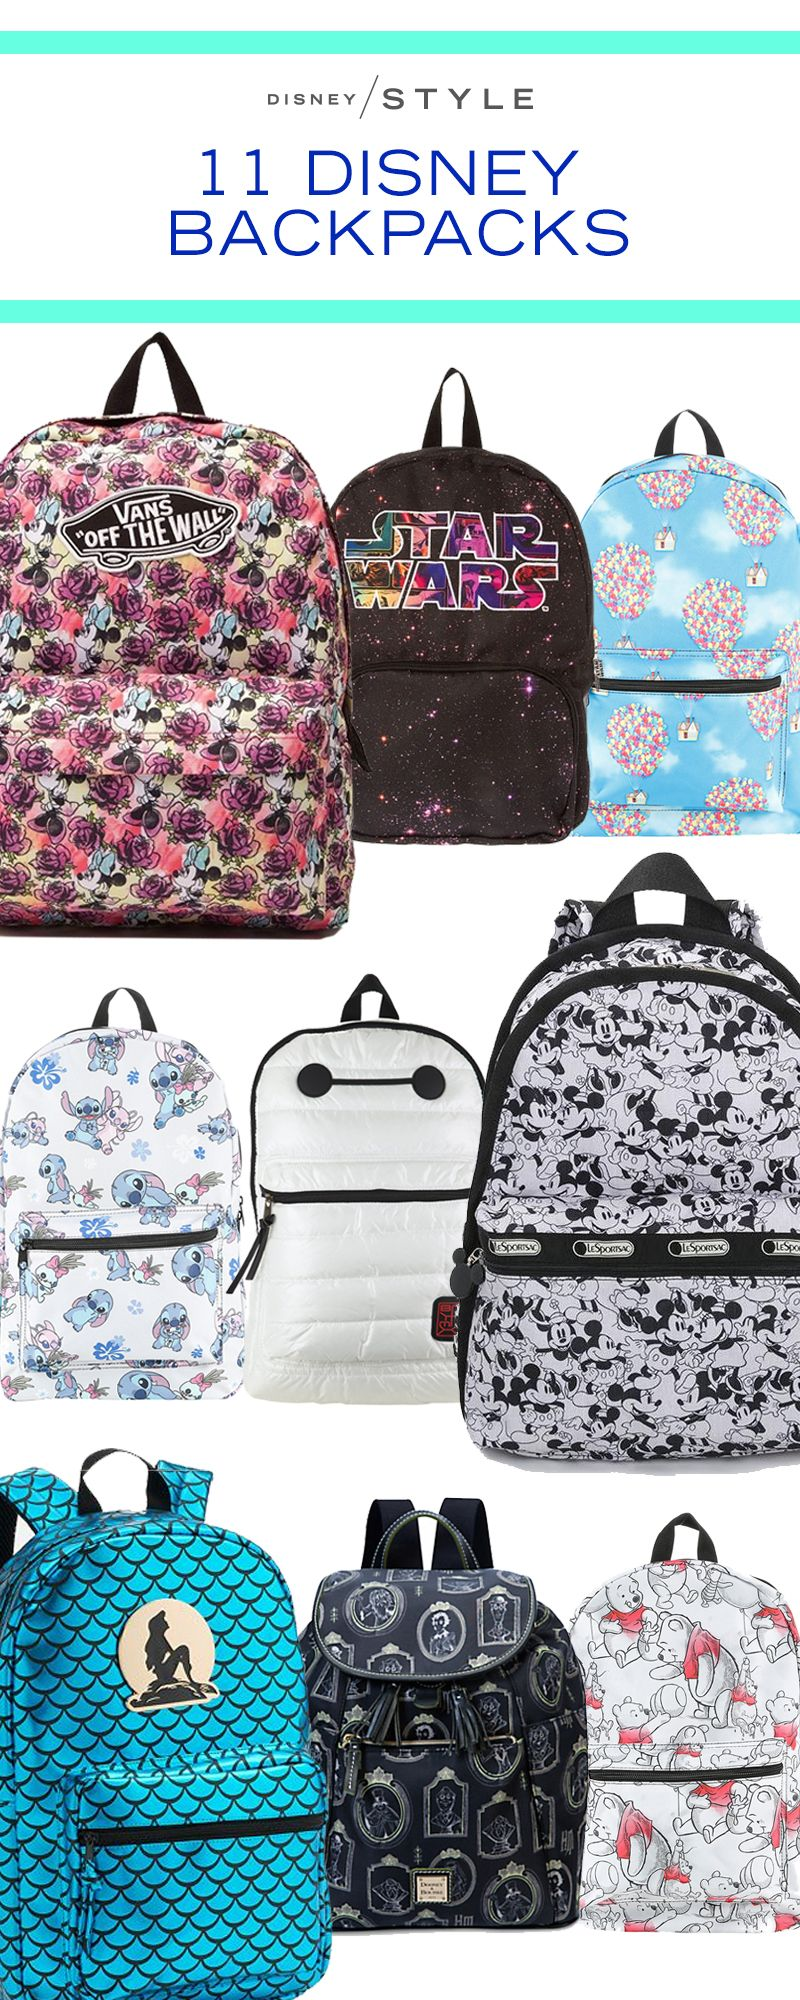 Up To Game 11 Your Backpacks Disney Accessories aqWw0pA